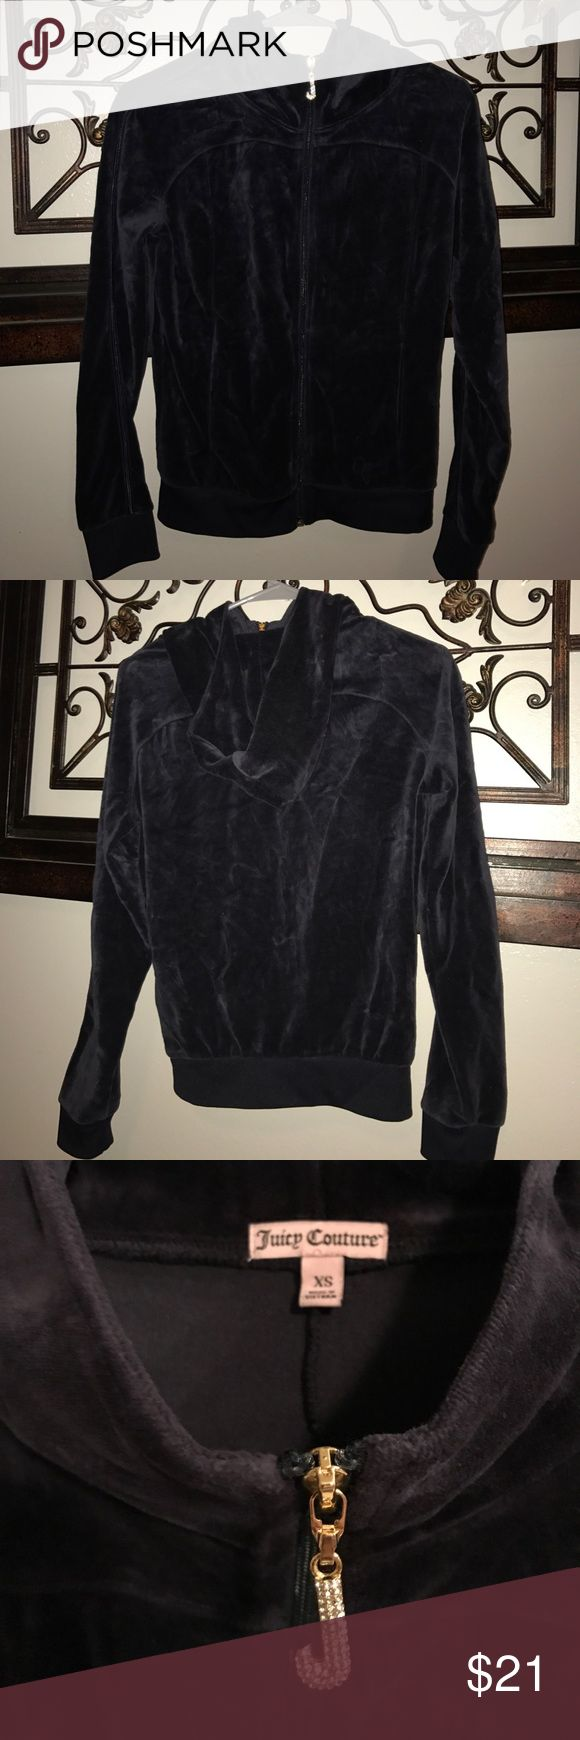 Juicy Couture Velour TrackSuit Hoodie size XS Juicy Couture Velour TrackSuit Hoodie size XS. Juicy Couture Tops Sweatshirts & Hoodies